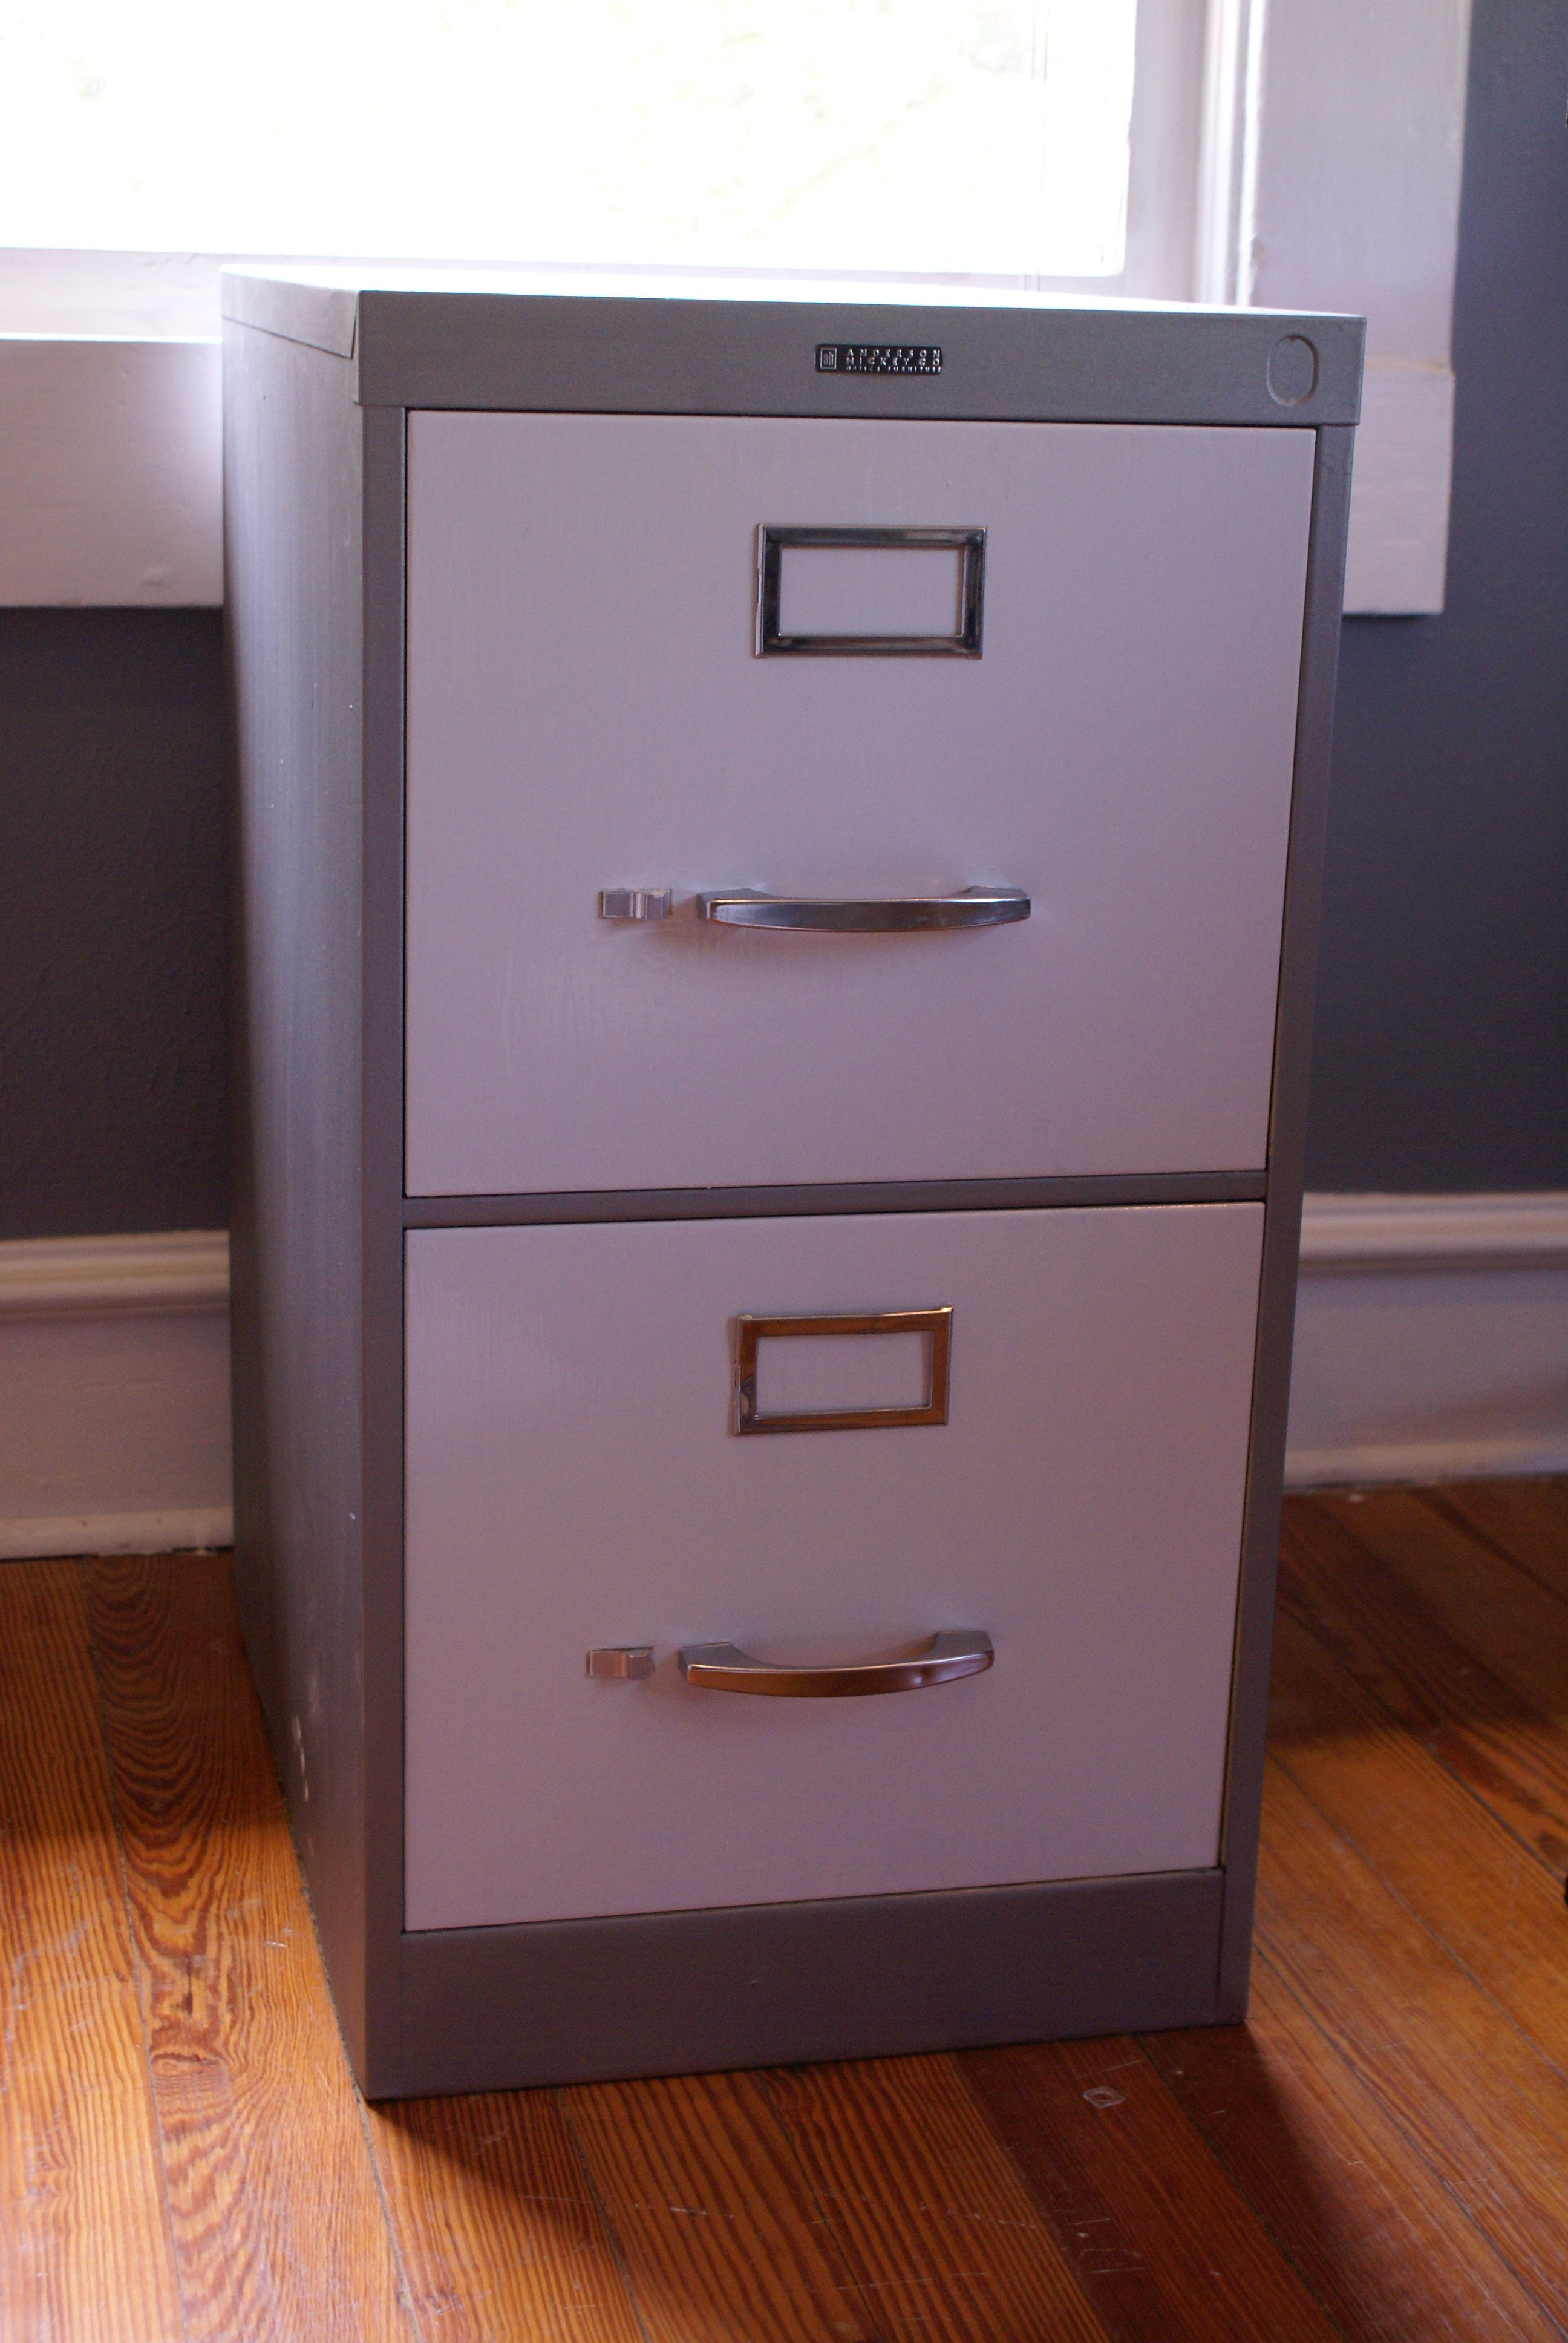 Diy Appliance Paint For Everything But Appliances Study Decor Refinishing Furniture Floor Renovation